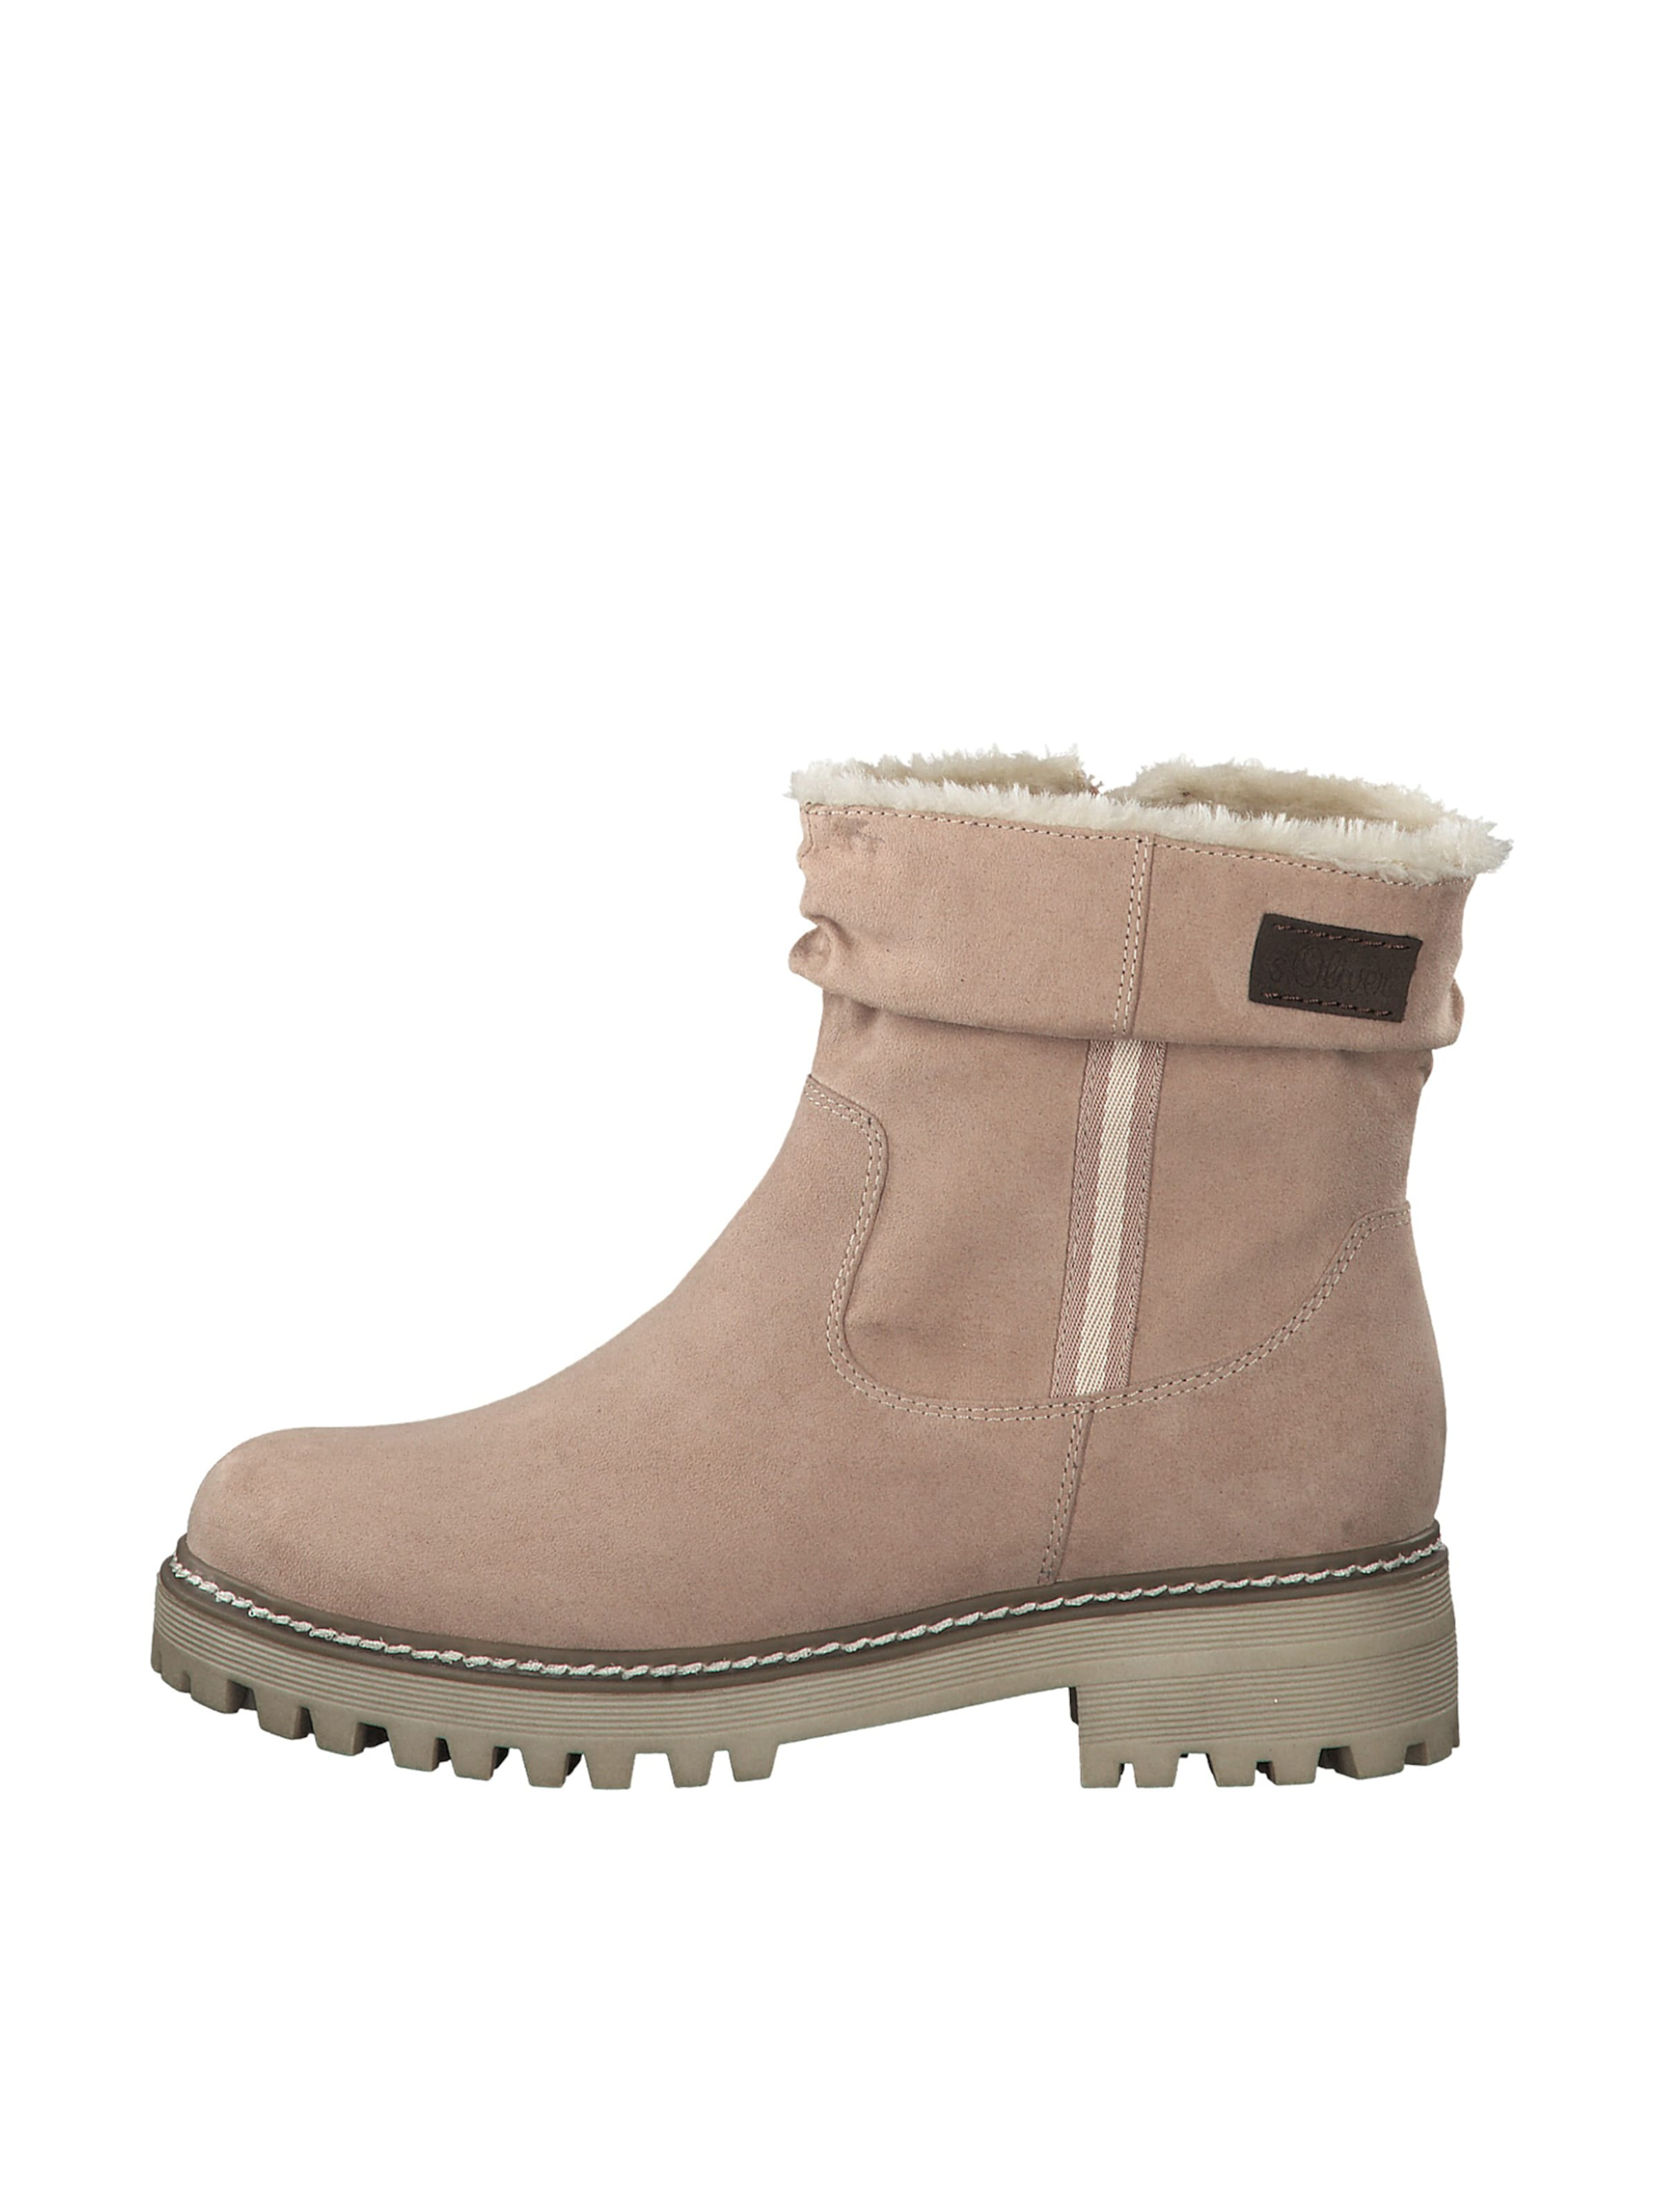 Label Red Stiefel In oliver Beige S kXiTPOuZ